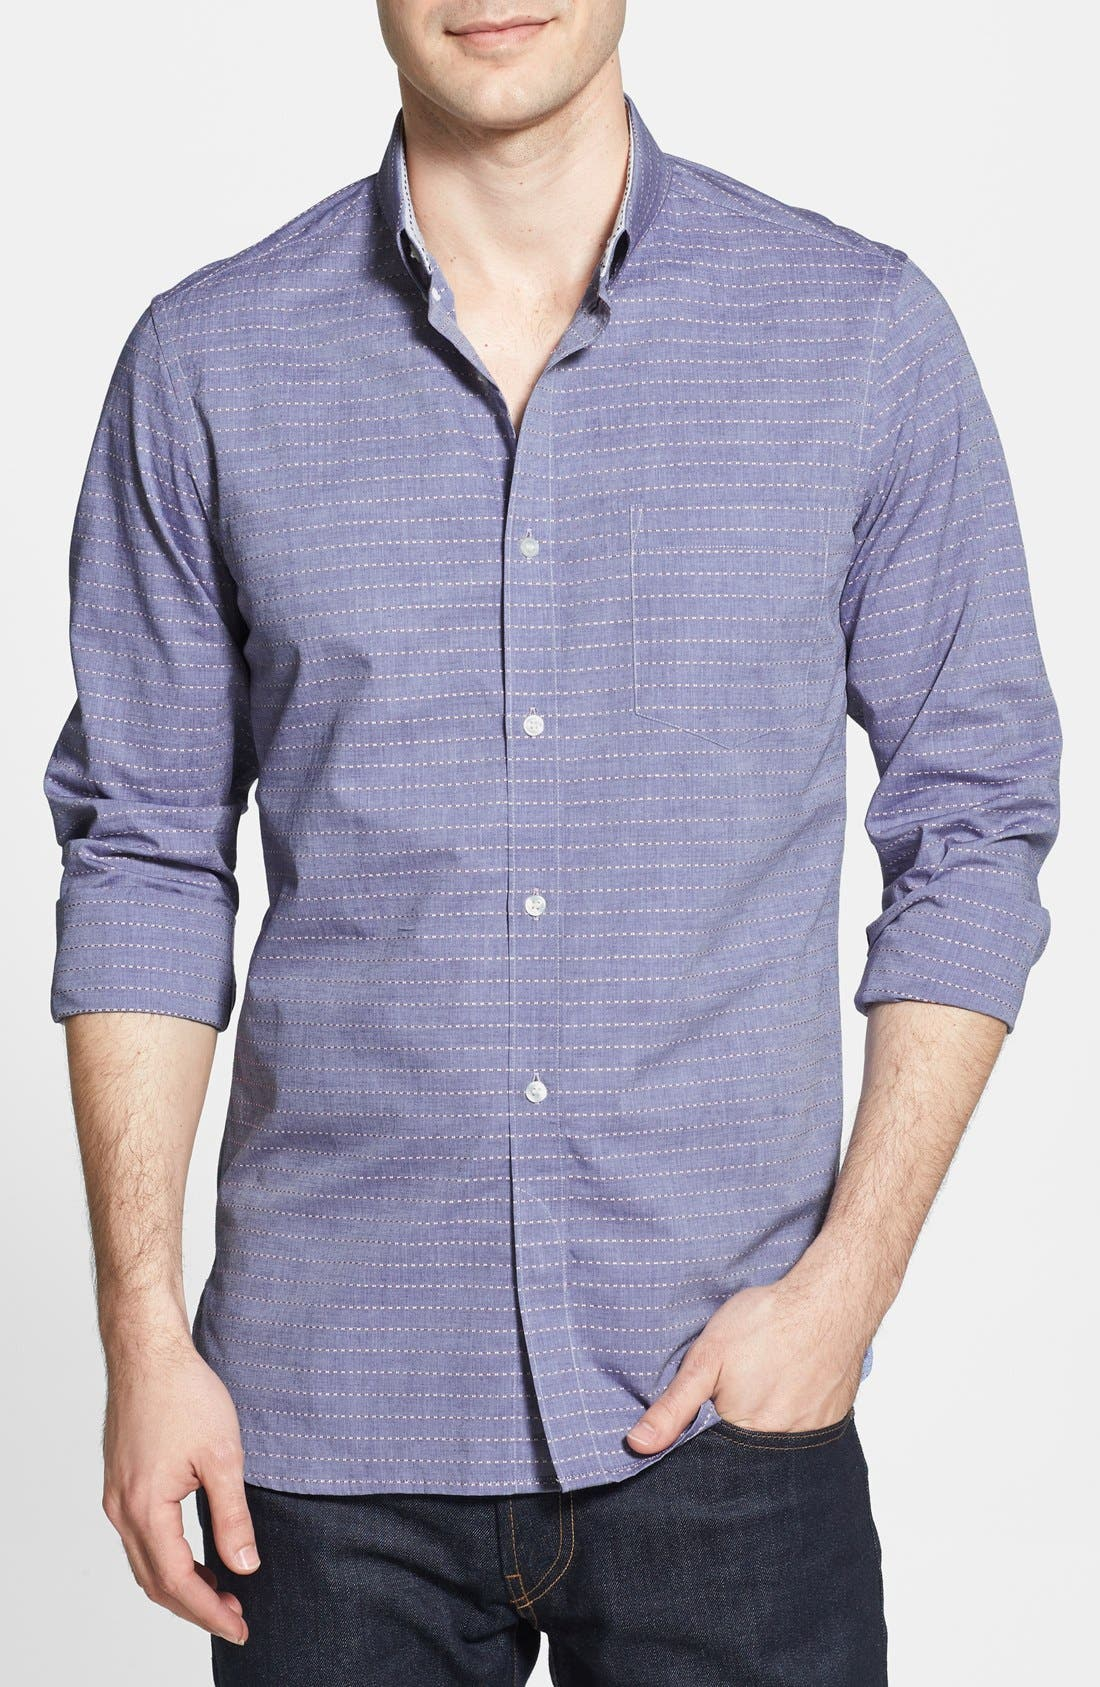 Alternate Image 1 Selected - French Connection 'Folklore' Chambray Slim Fit Sport Shirt